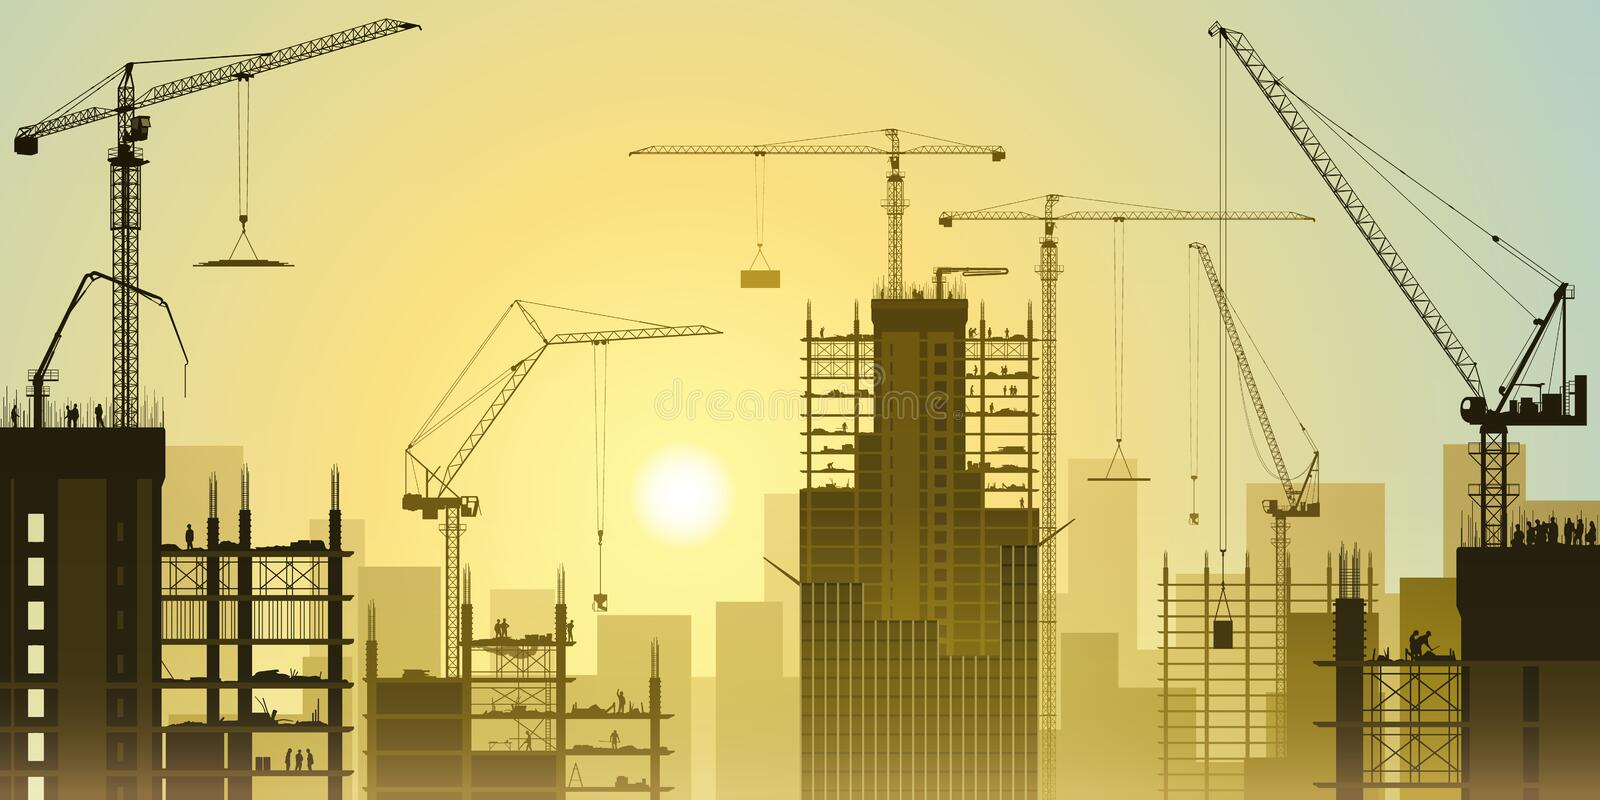 Construction Site with Tower Cranes royalty free illustration